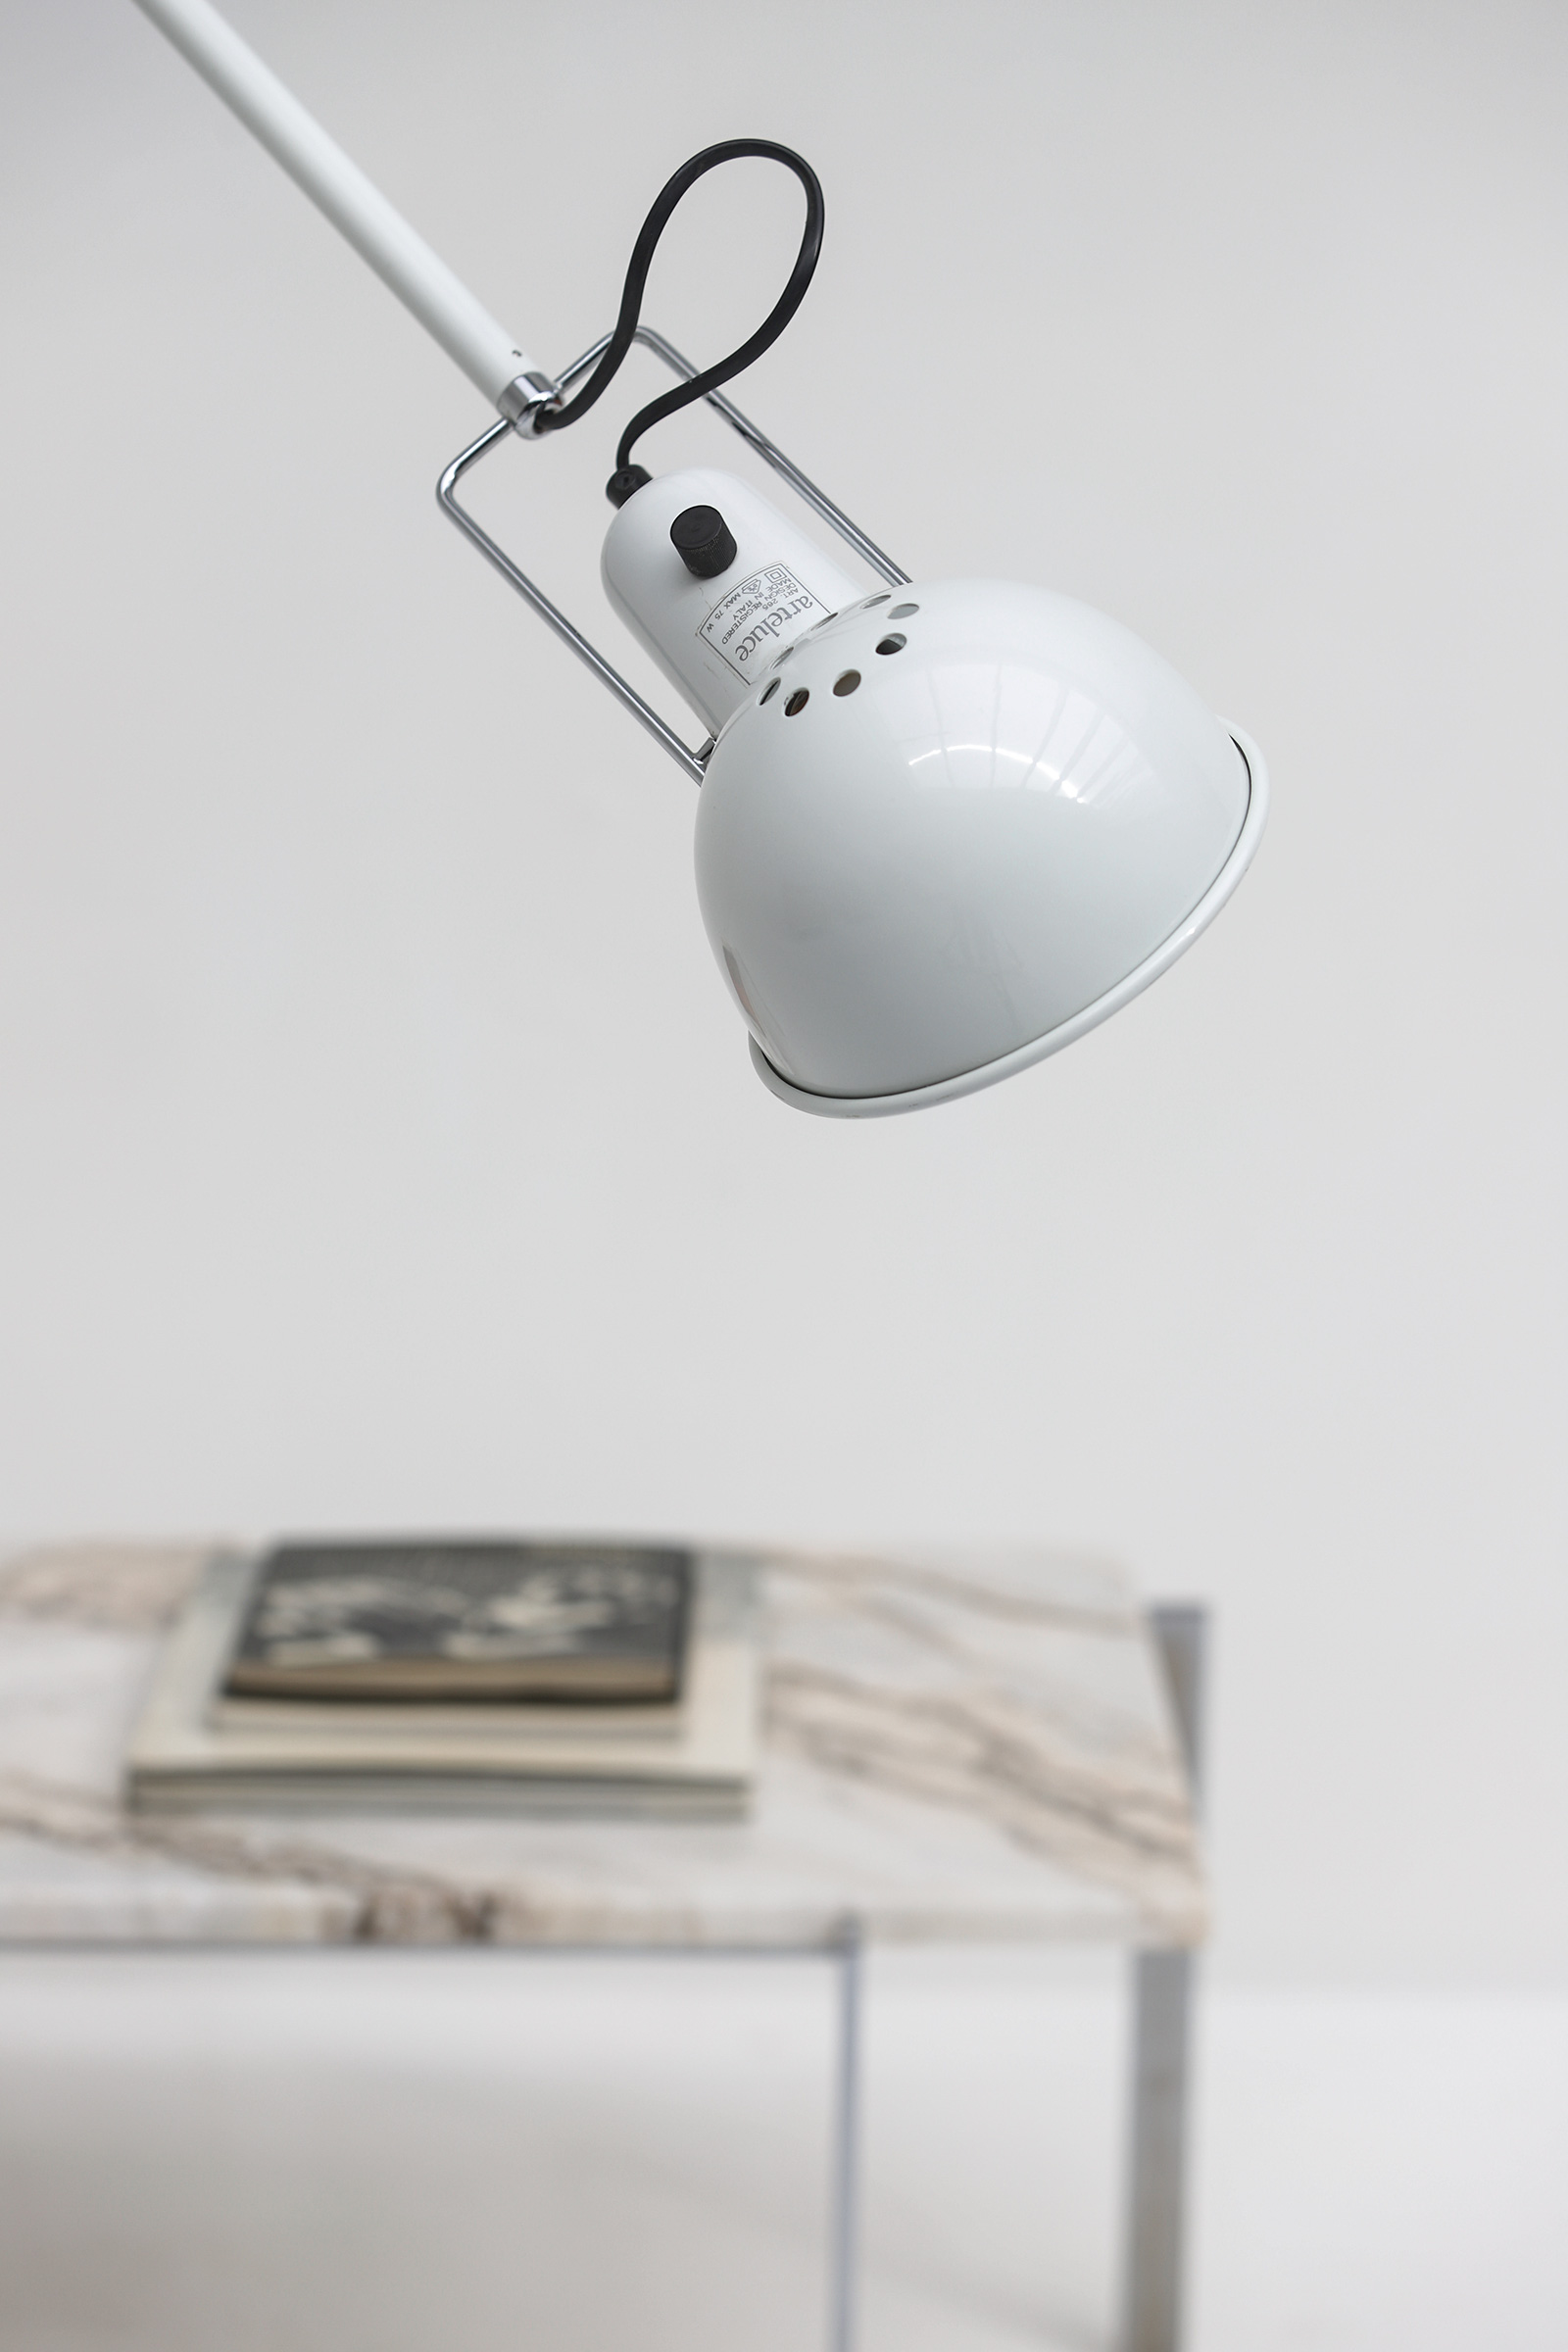 Paolo Rizzatto Arteluce Model 265 Wall Lamp Italy 1973image 3